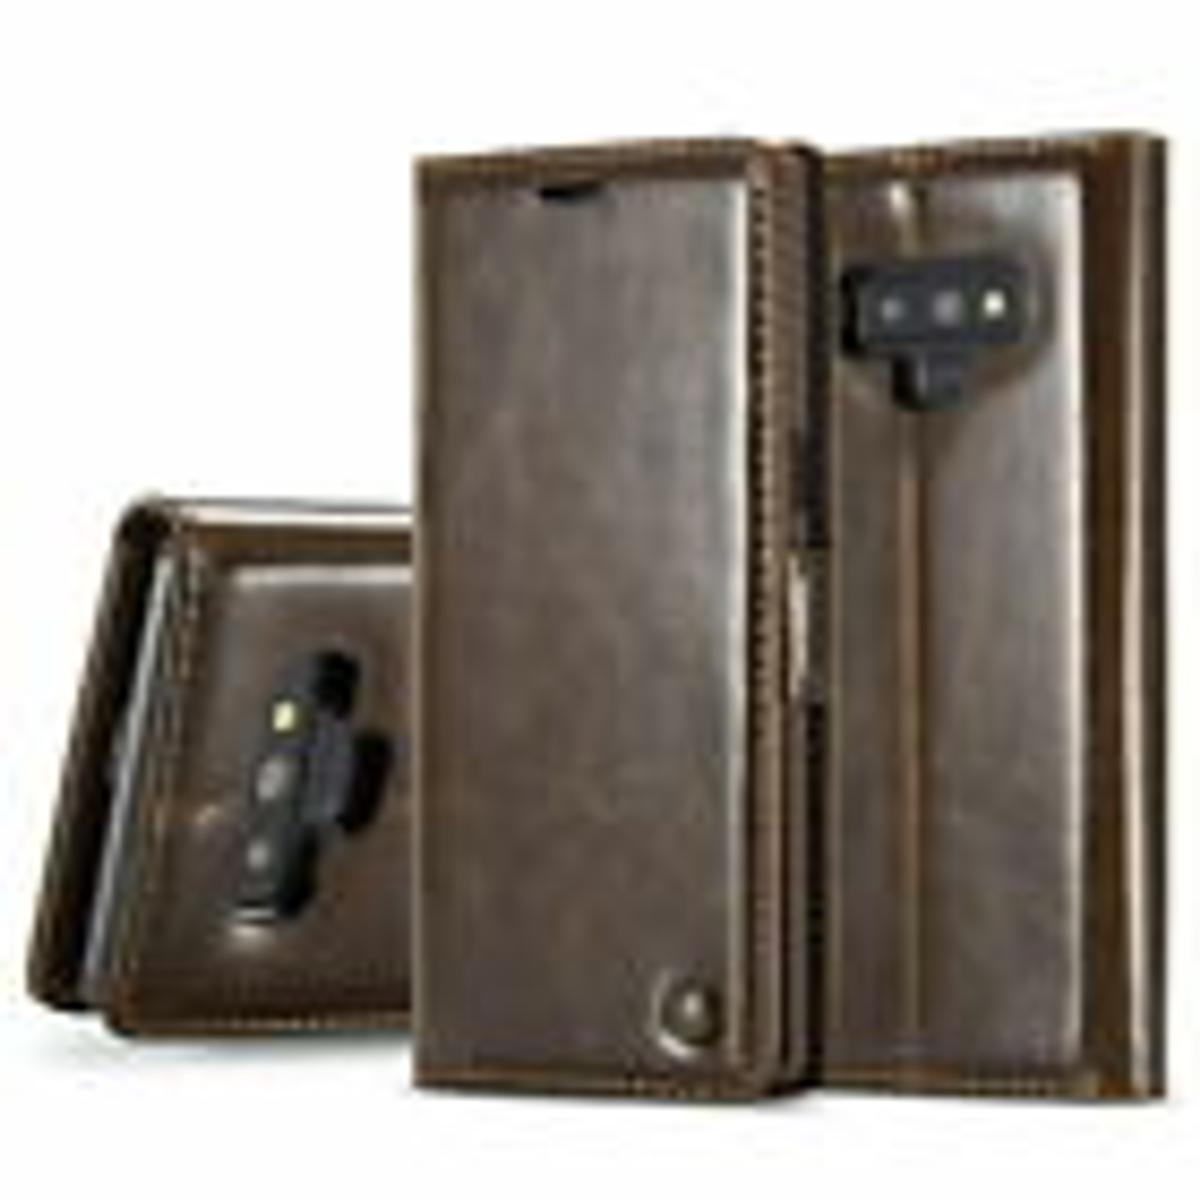 Brand New CaseMe Samsung Galaxy S9 Plus Leather Case Magnetic Stand Flip Cover Cost On EBay £6.00